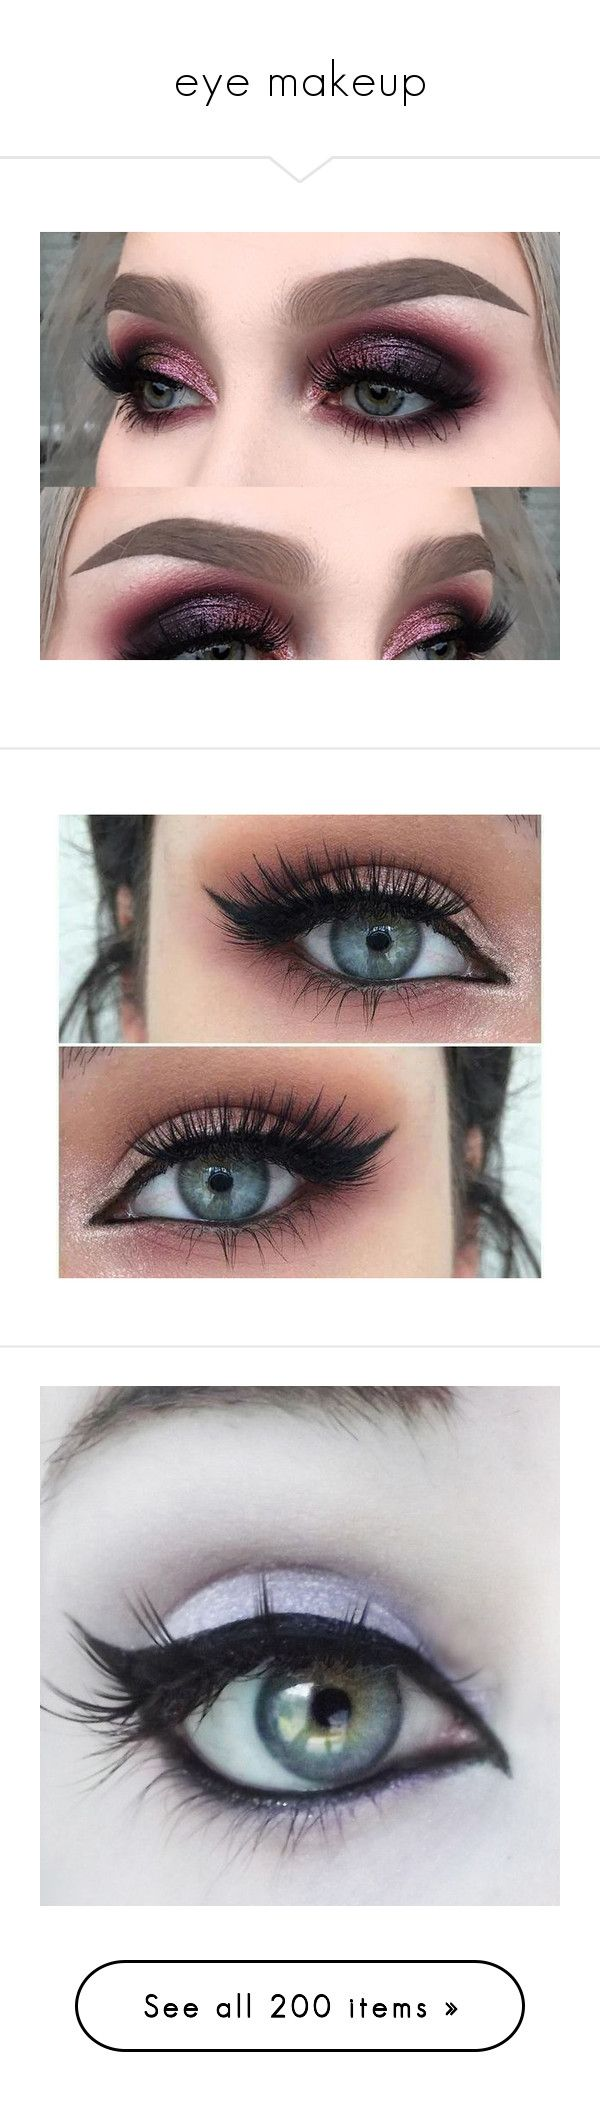 """""""eye makeup"""" by rebel-rxse ❤ liked on Polyvore featuring beauty products, makeup, eye makeup, eyes, beauty, eyeshadow, elf cosmetics, long wear eyeshadow, cosmetics and lip makeup"""